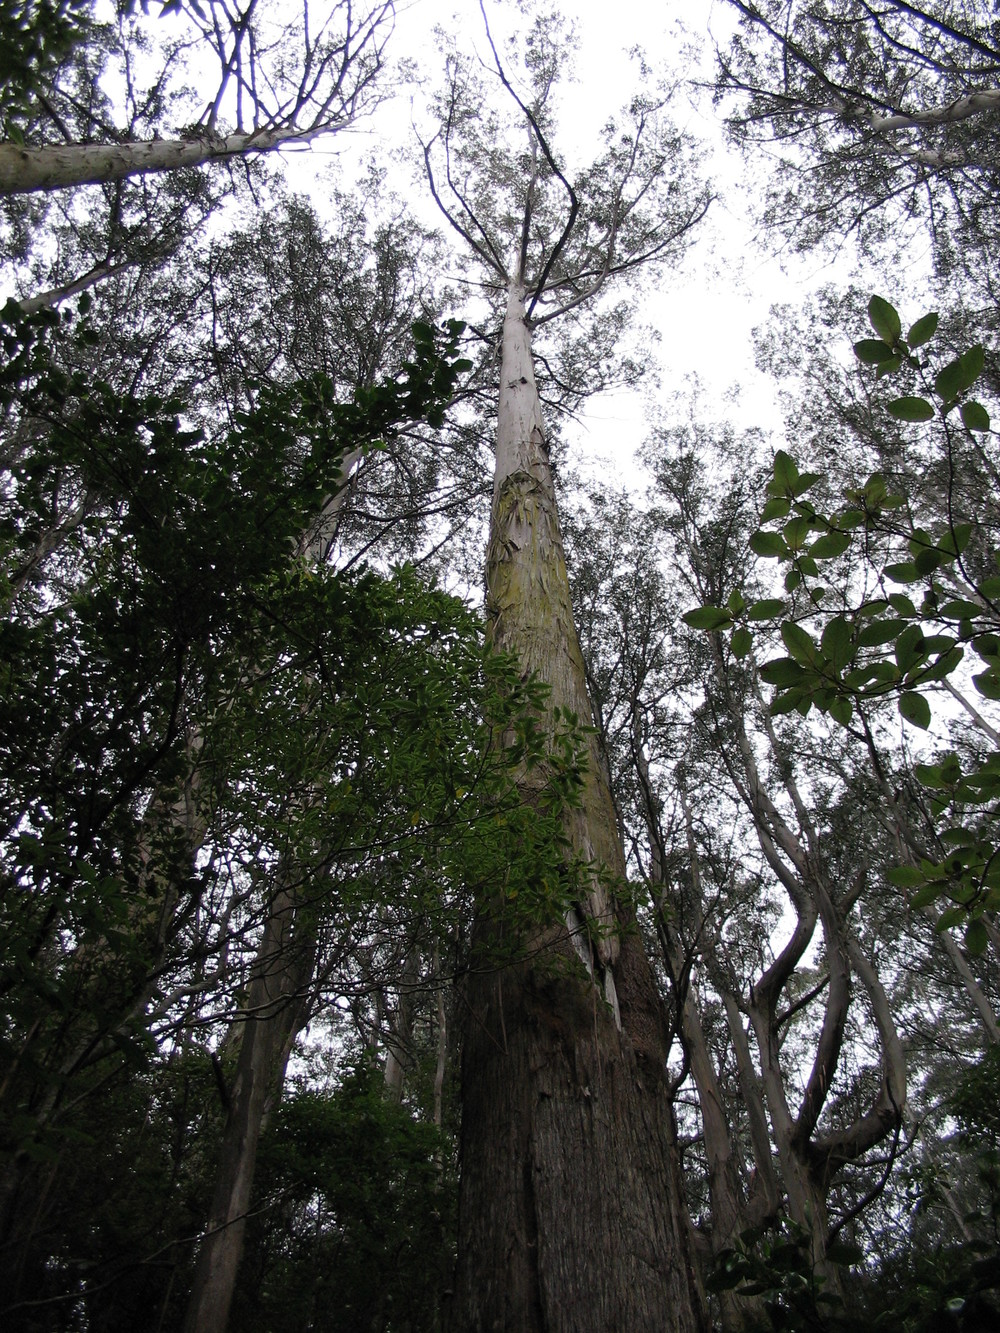 In an ironic coda, the world's tallest  Eucalyptus  trees are found not in its native Australia, but neighbor New Zealand, where the climate is too wet for it to burn itself down. Photo by the author.